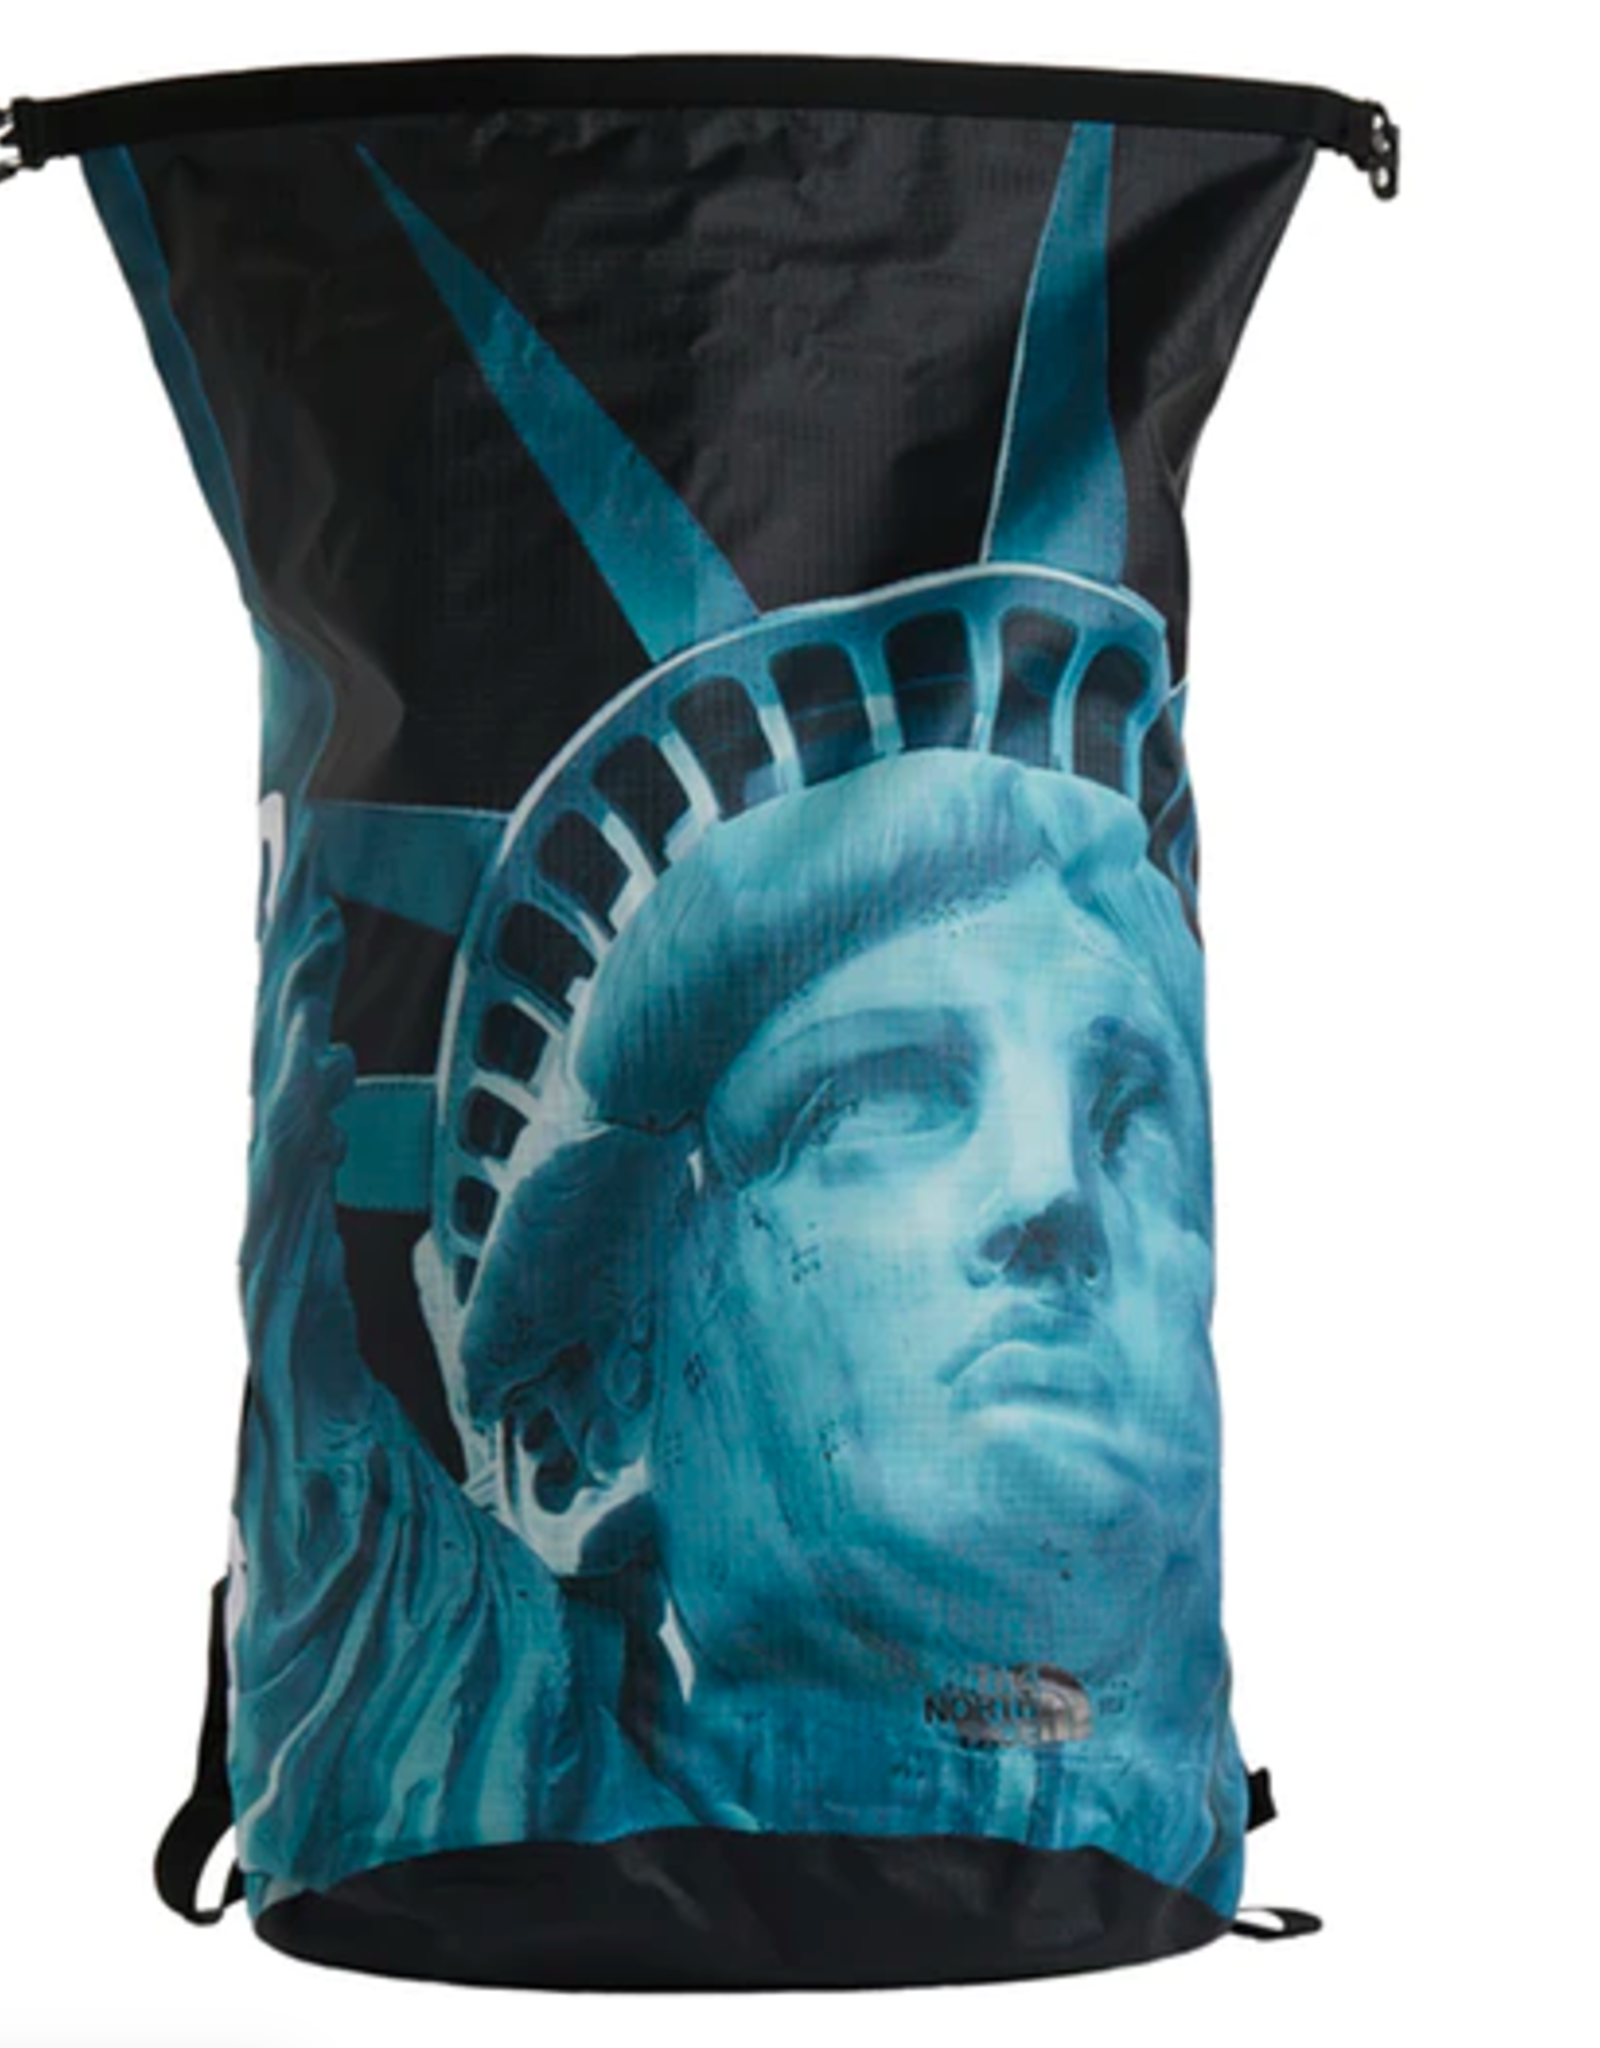 SUPREME Supreme The North Face Statue of Liberty Waterproof Backpack Black